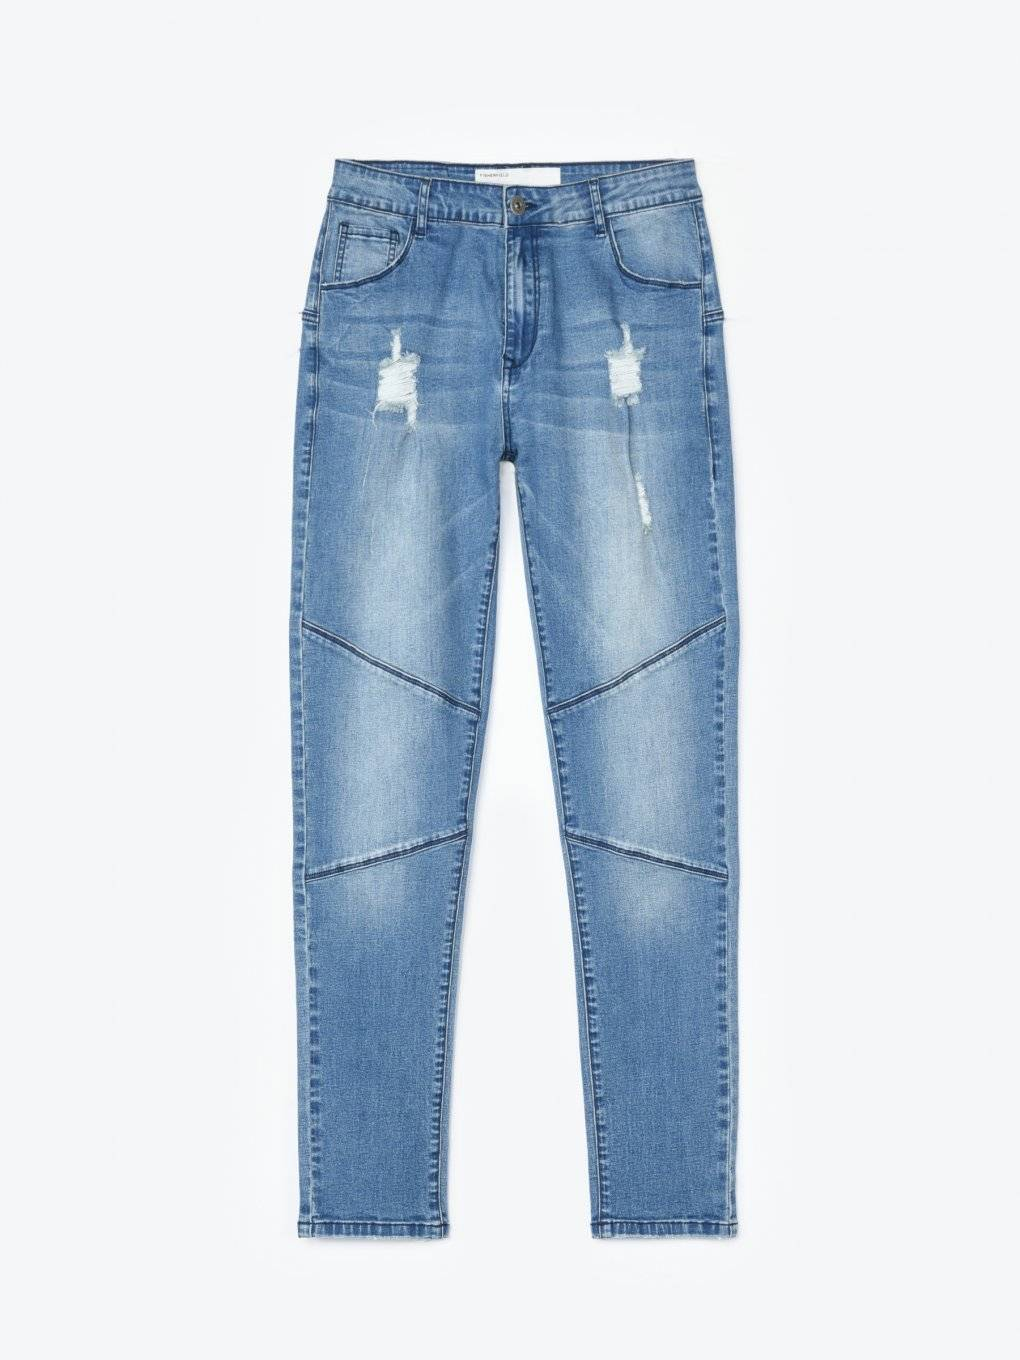 Damaged carrot fit jeans